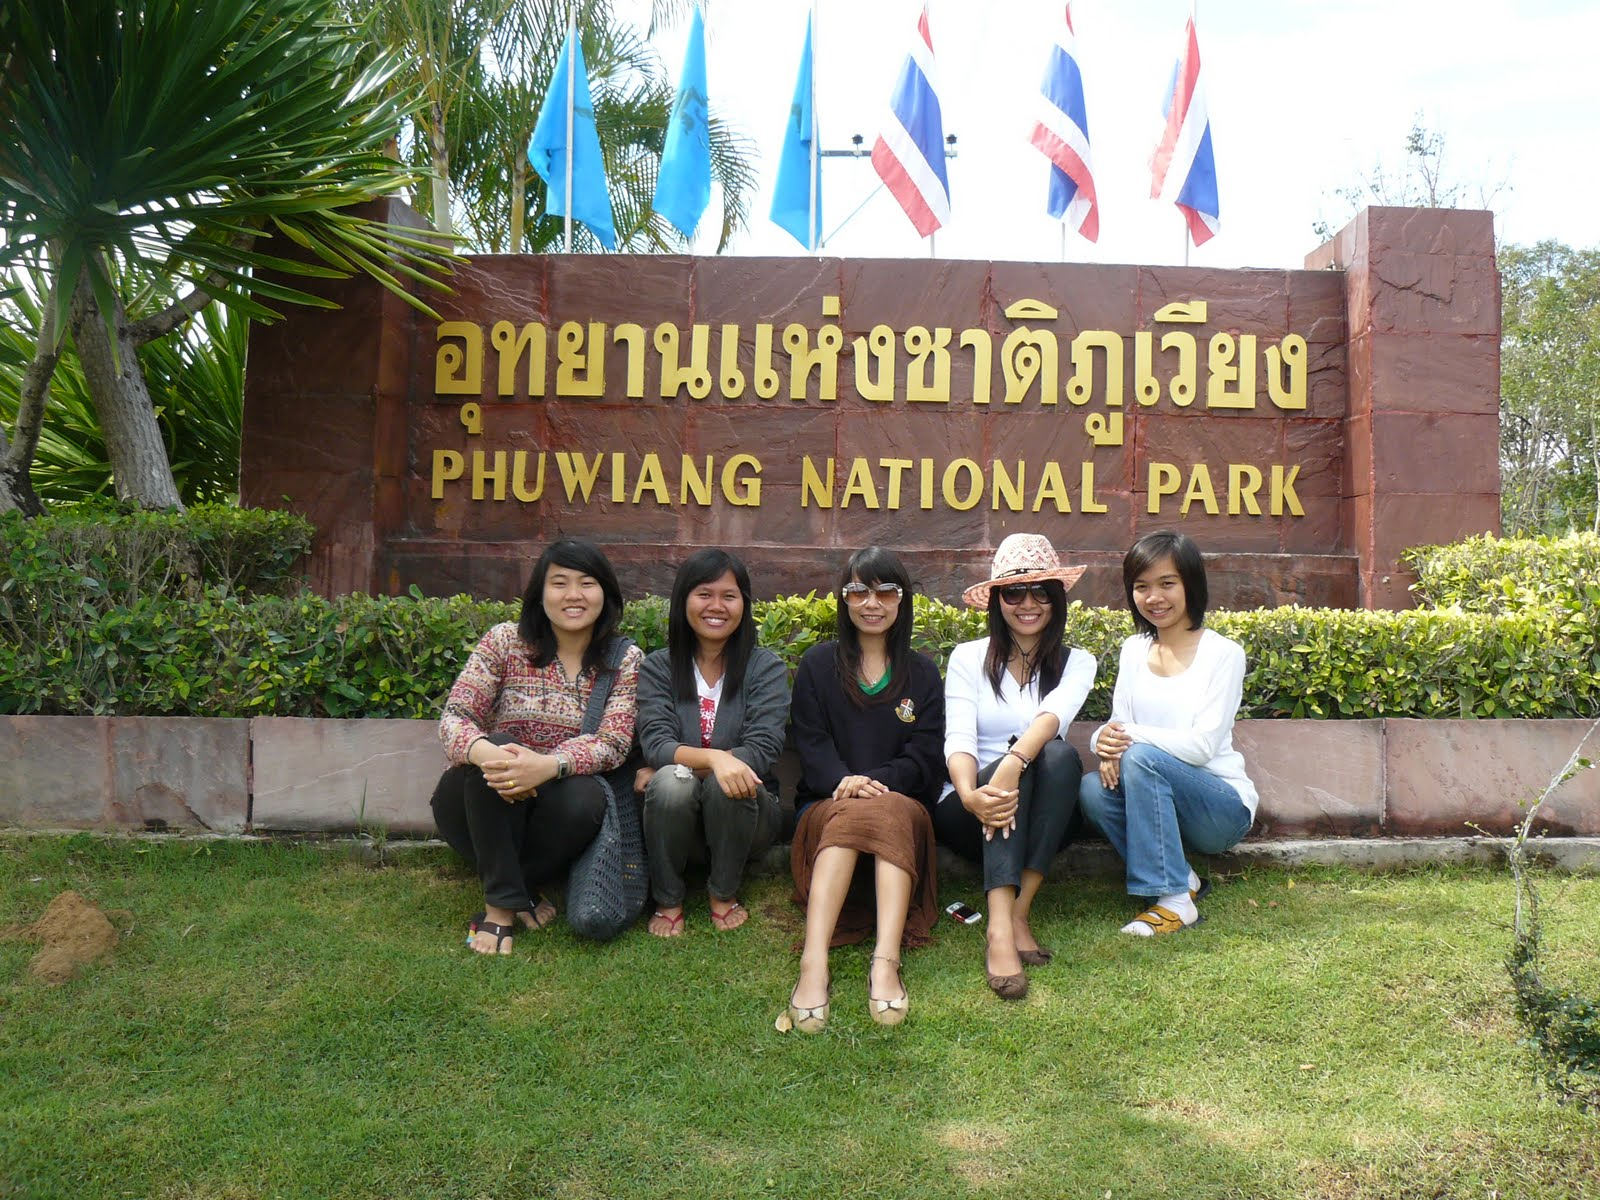 Si Wiang Dinosaur Park Phu Wiang National Park, Welcome to Khonkaen: Attractions